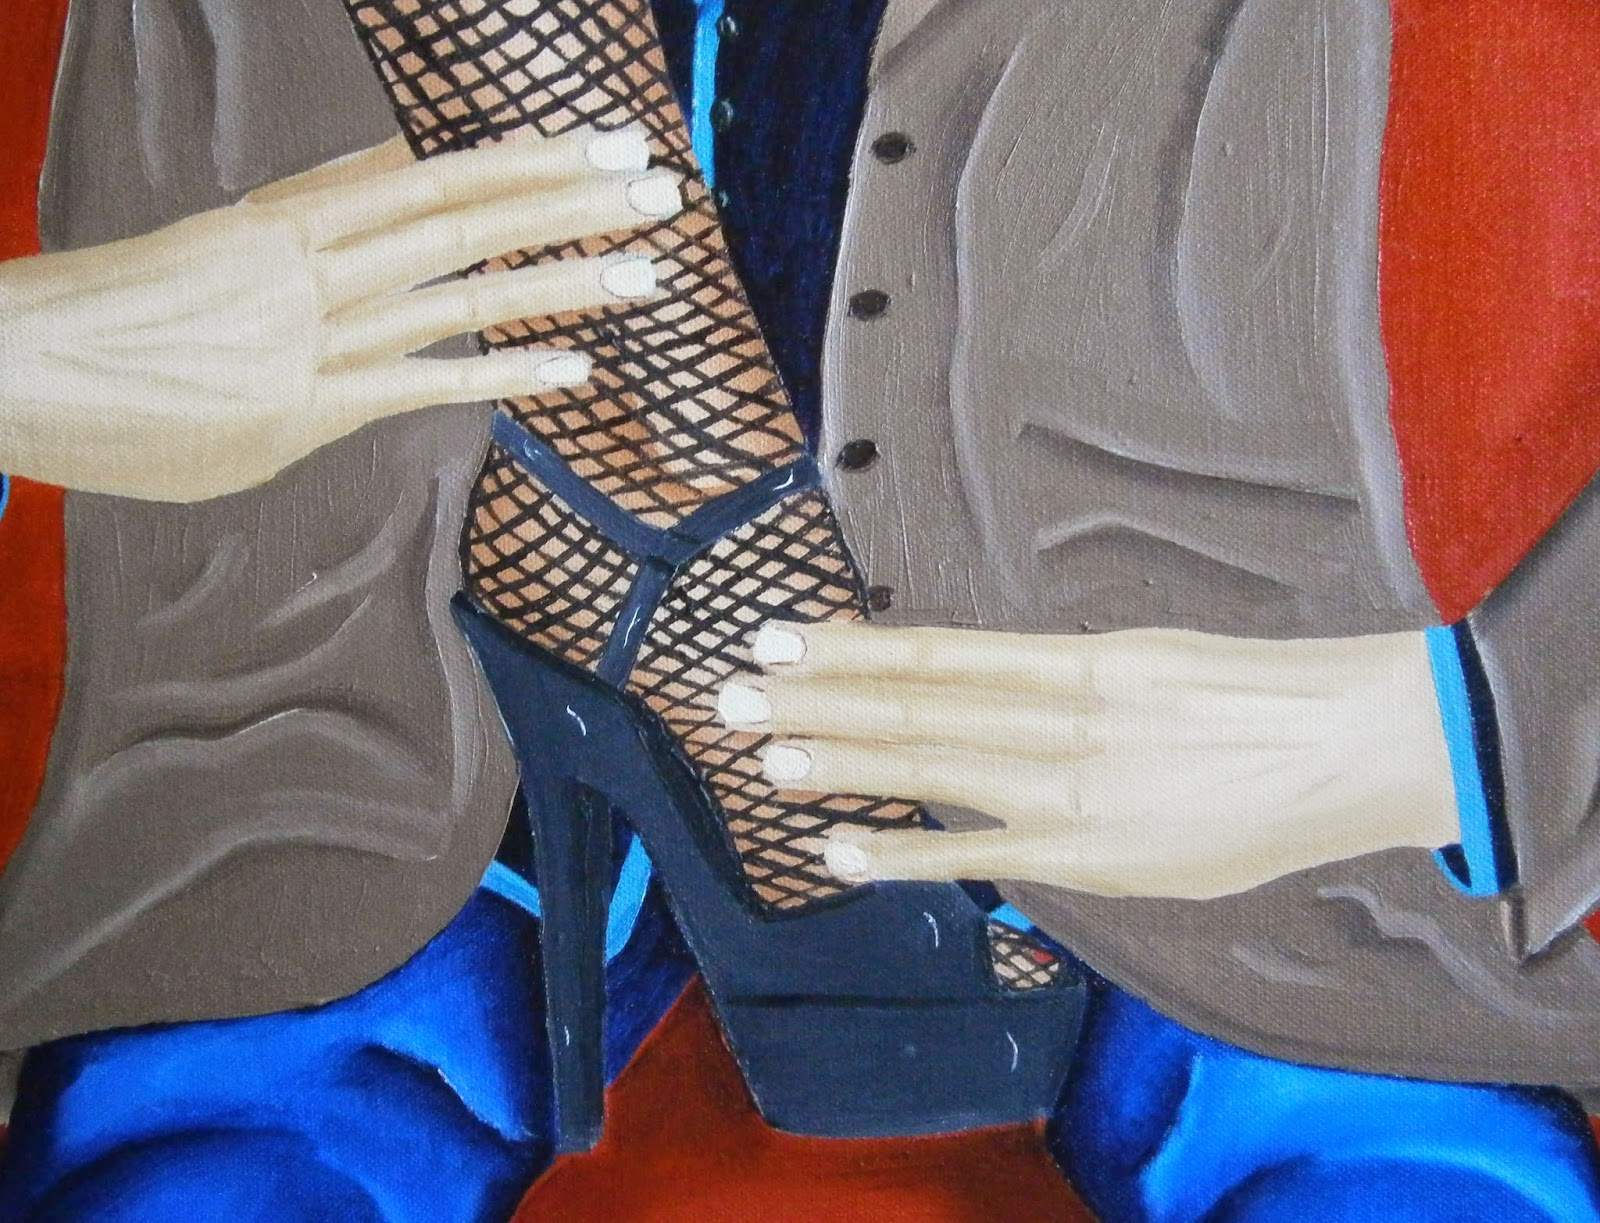 A close up of the painting Mr. Submissive